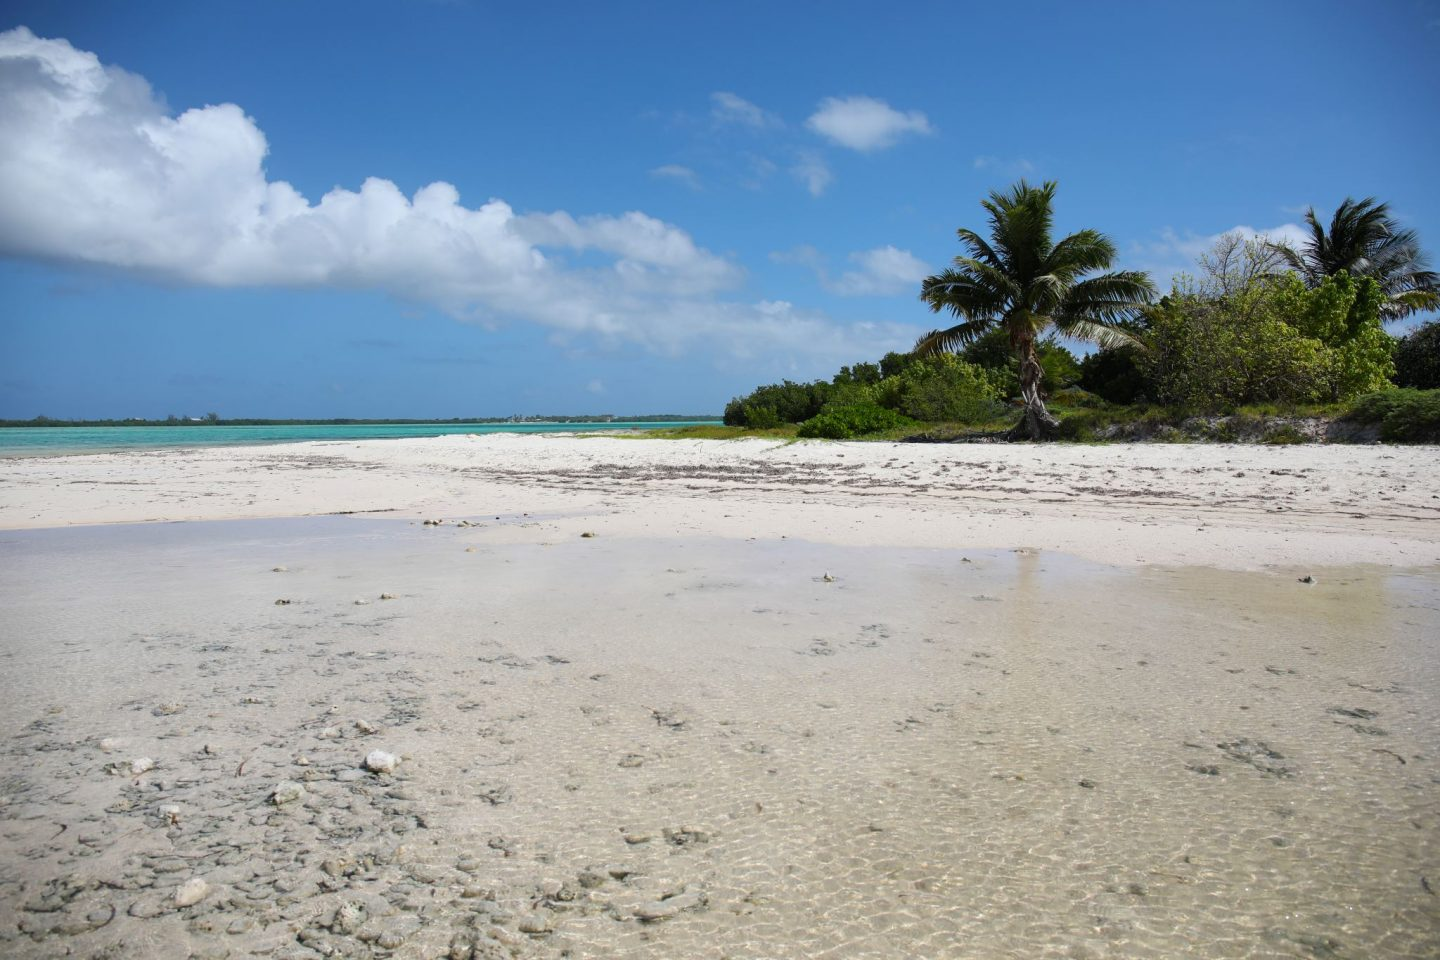 Owen Island, Little Cayman, Katie Heath, KALANCHOE